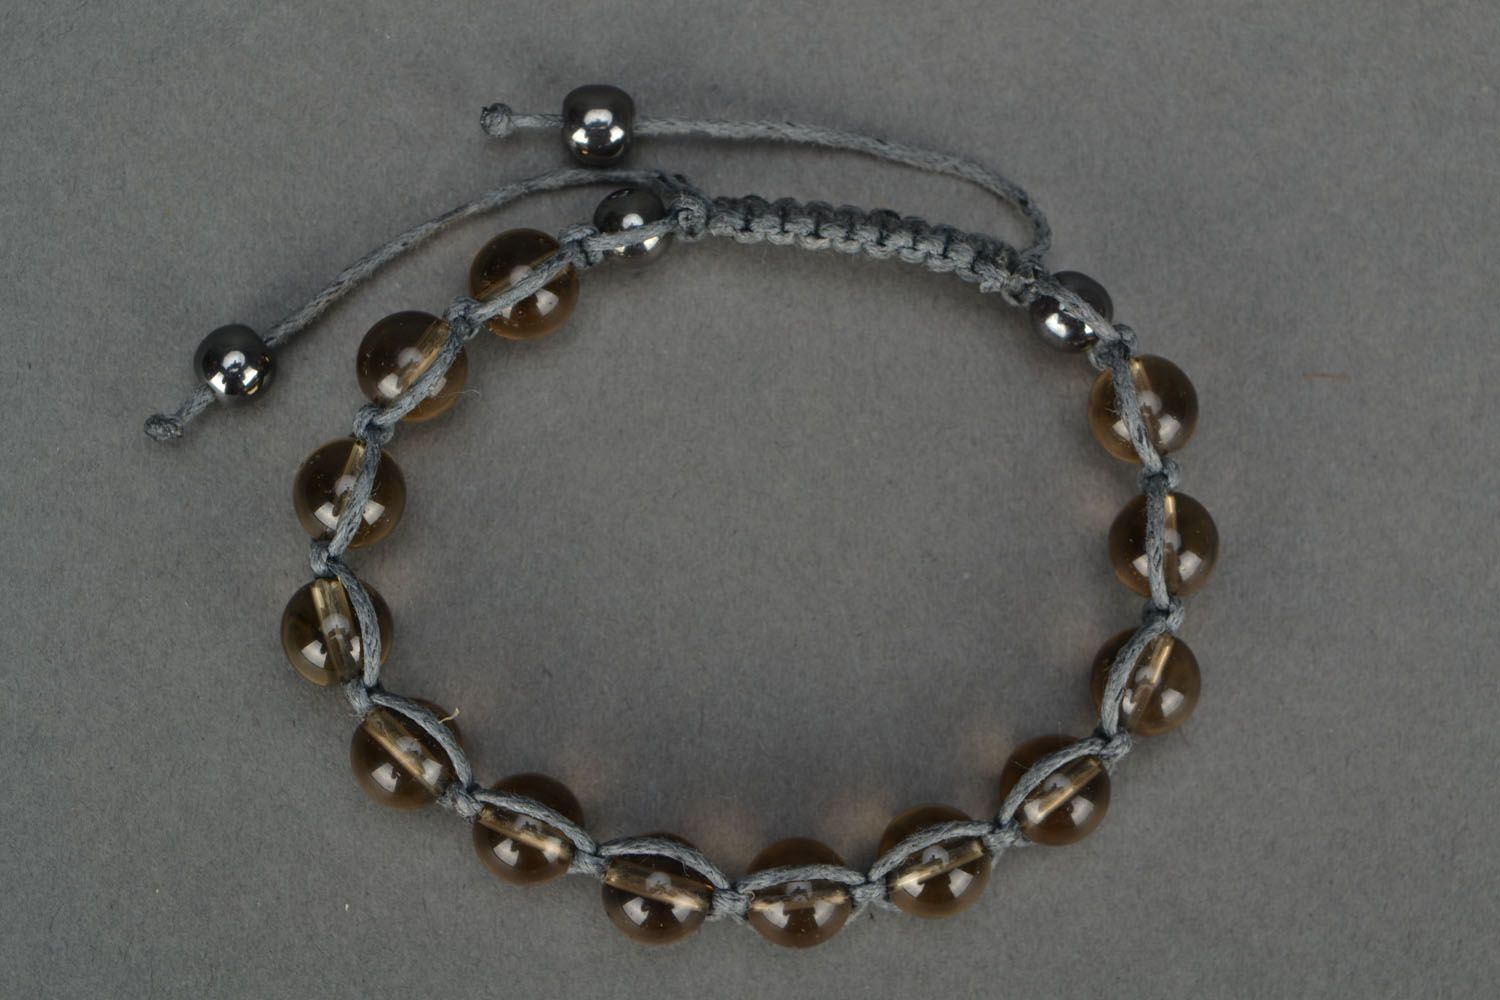 Bracelet woven of beads and cord photo 2